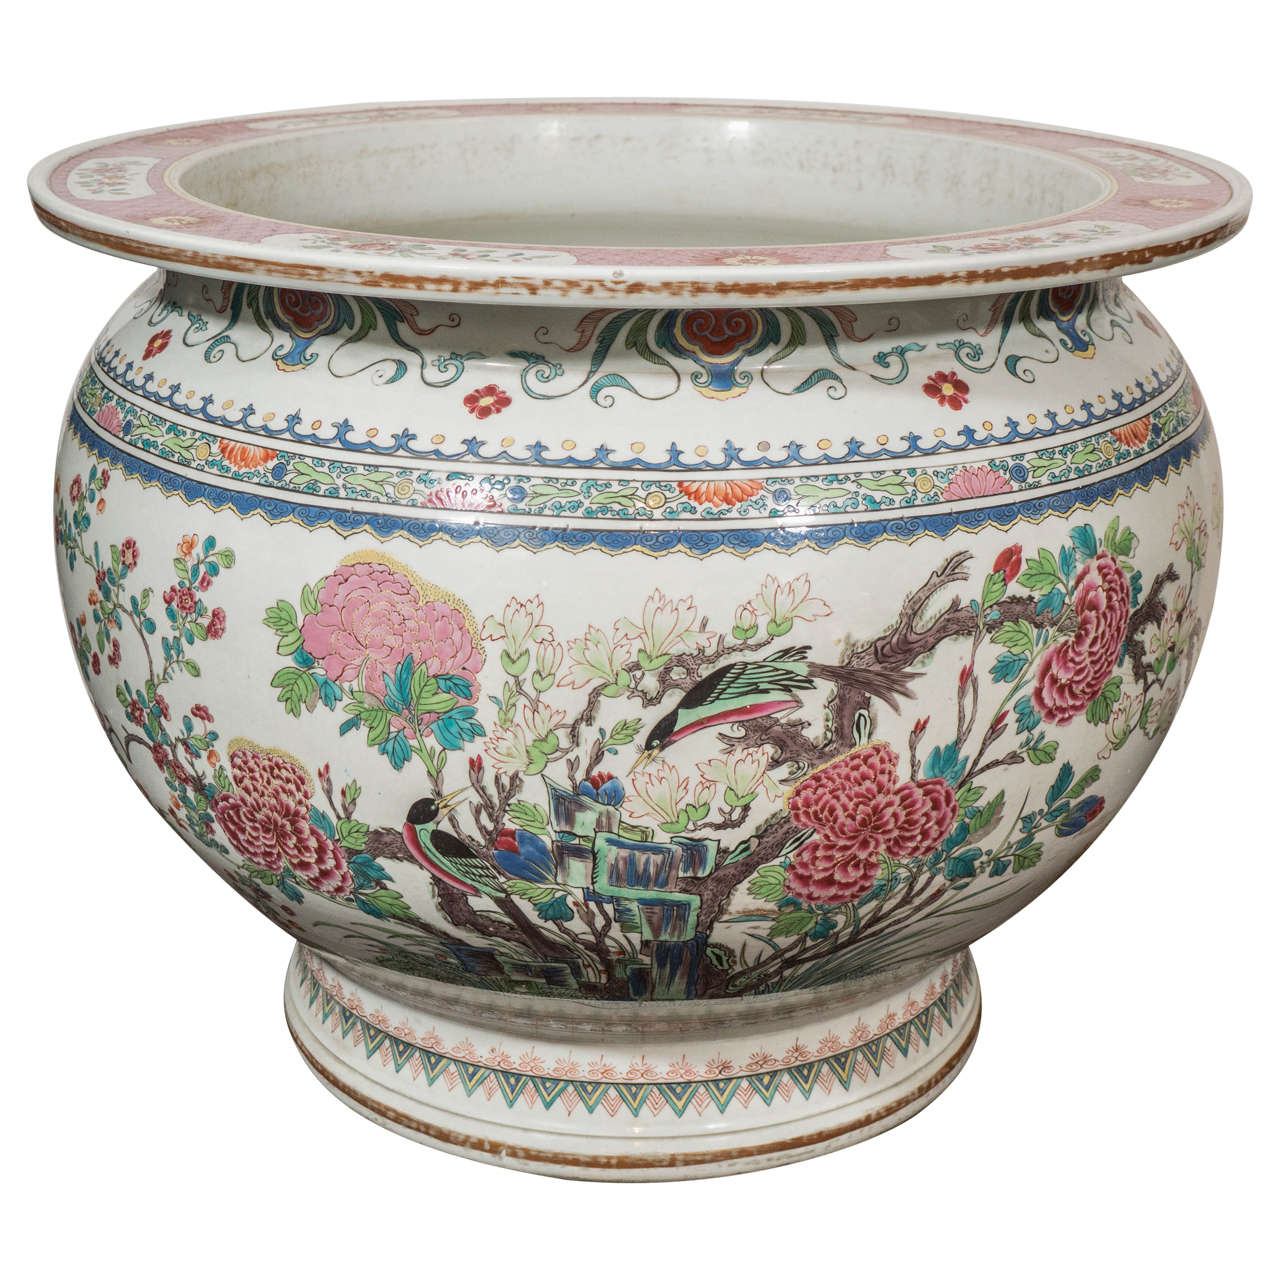 Antique chinese porcelain fish bowl at 1stdibs for Large fish bowl